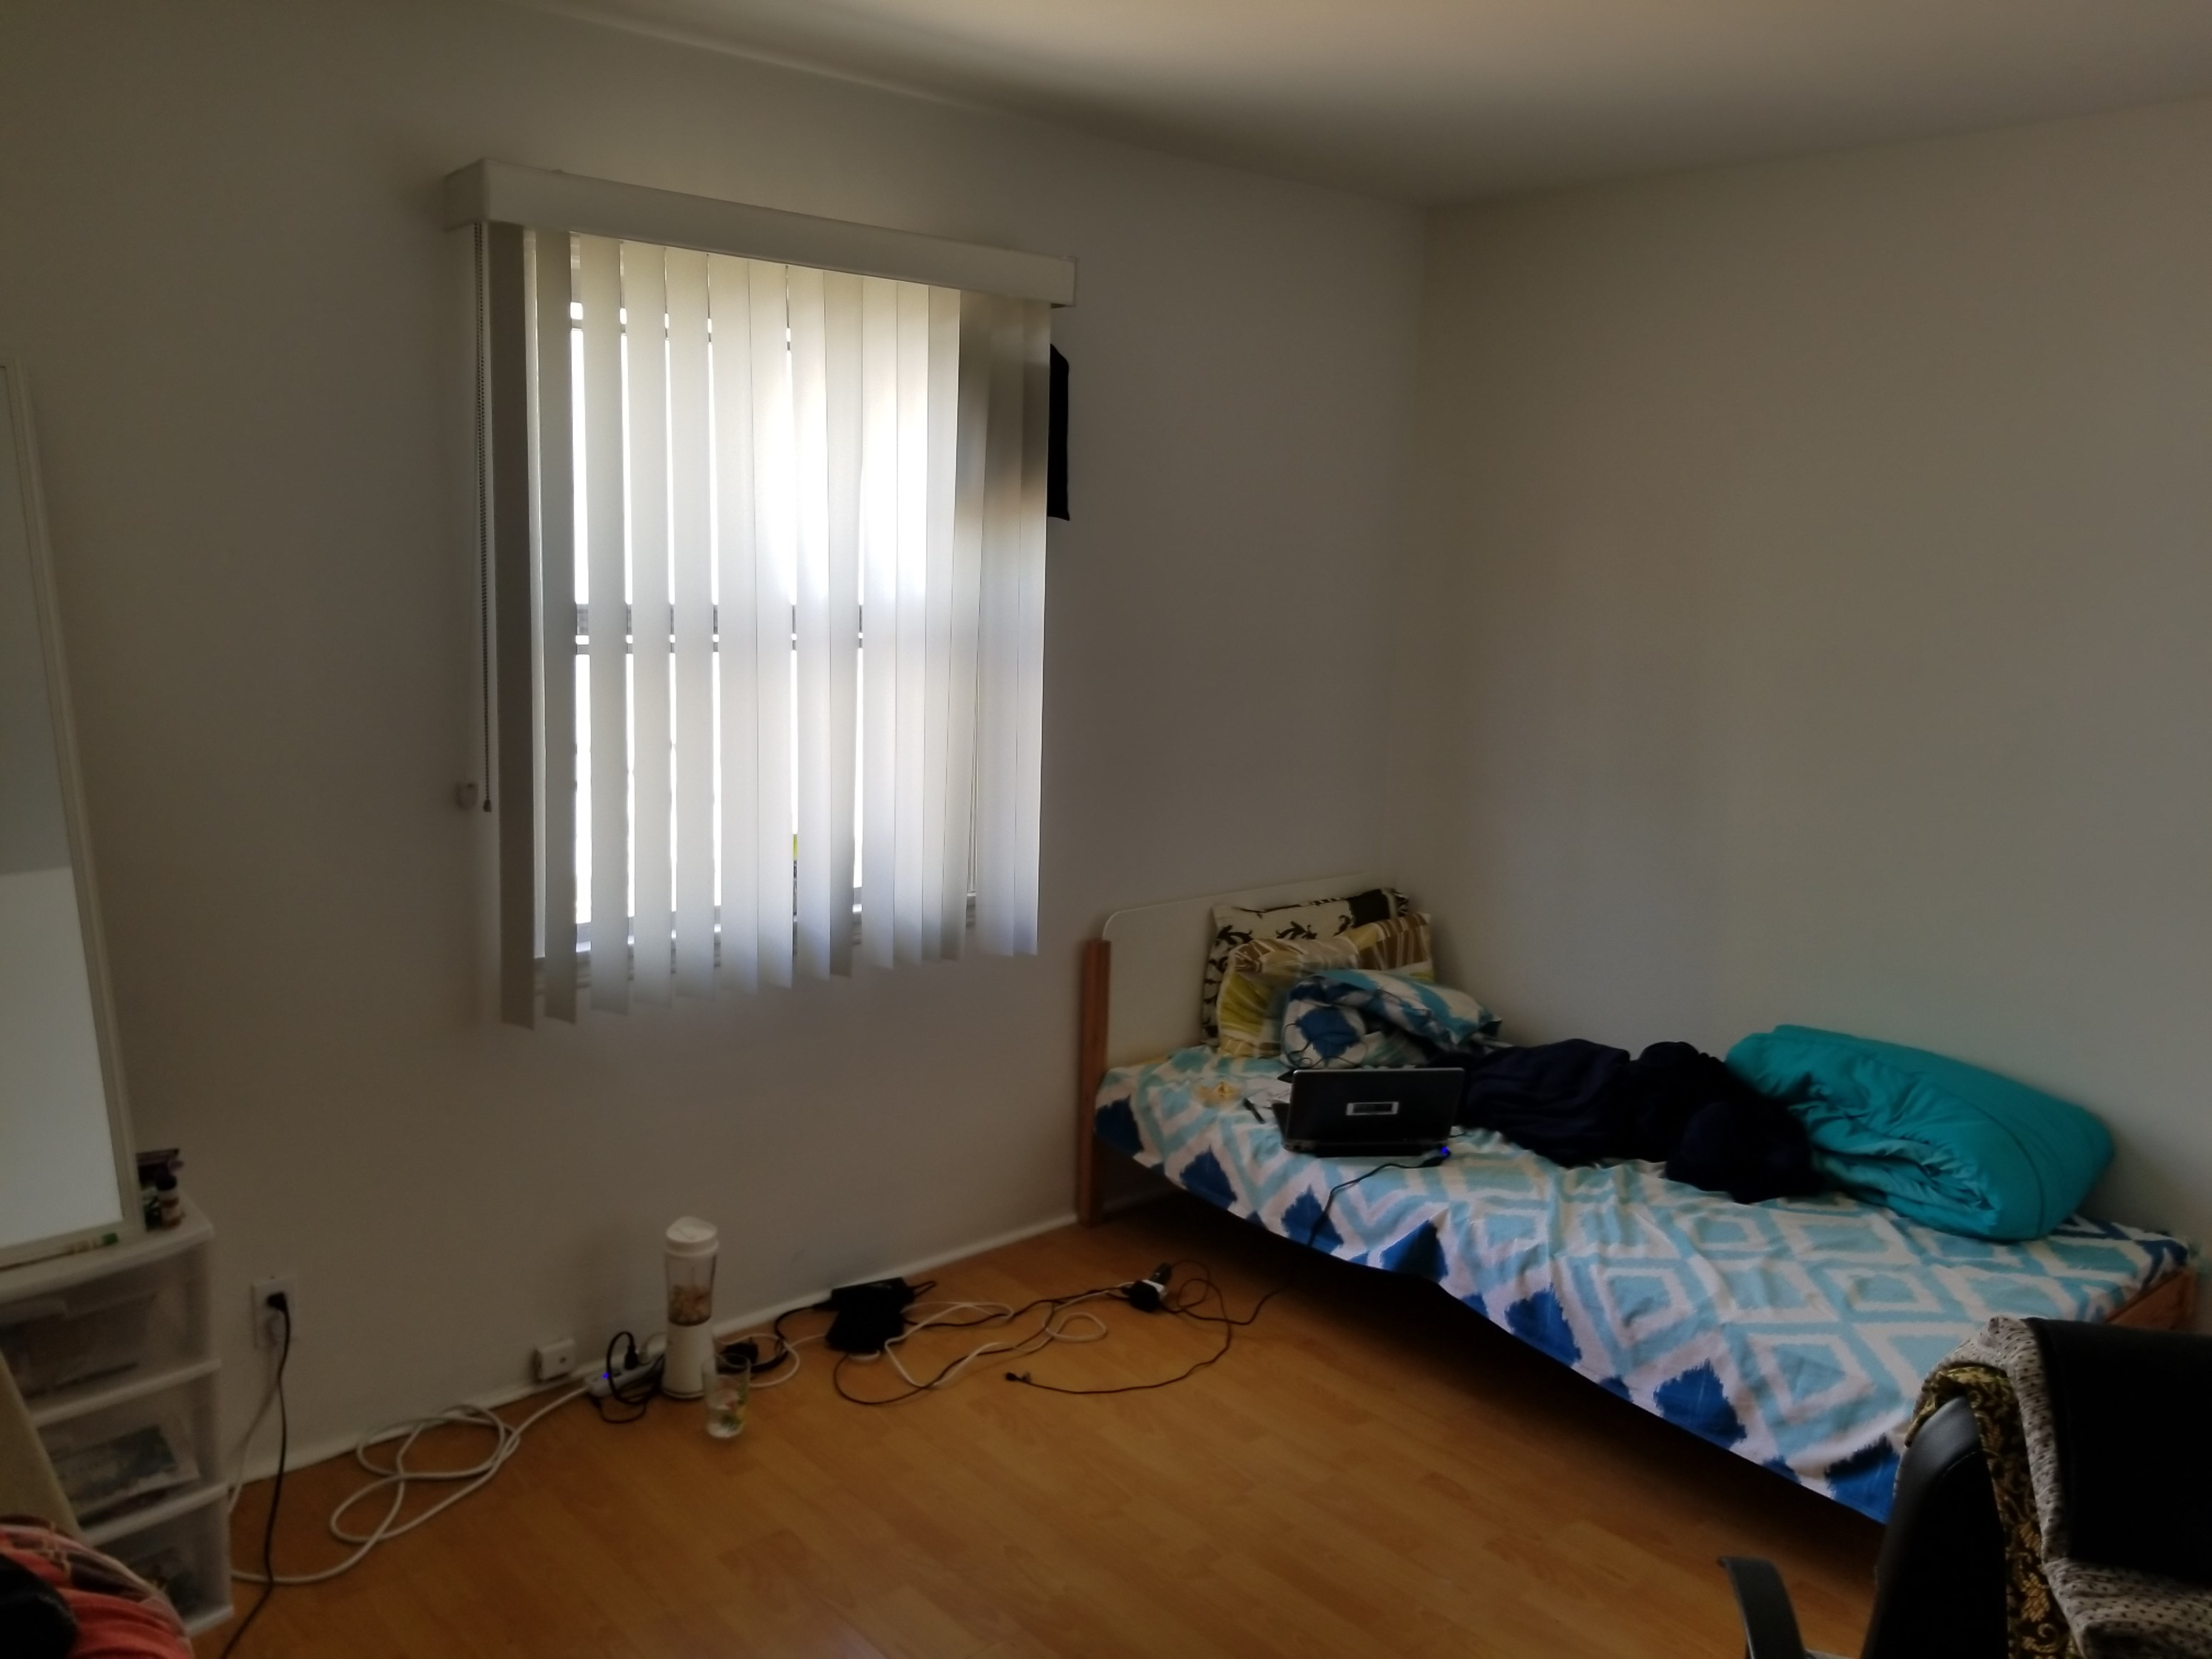 rooms for rent in los angeles – apartments, flats, commercial